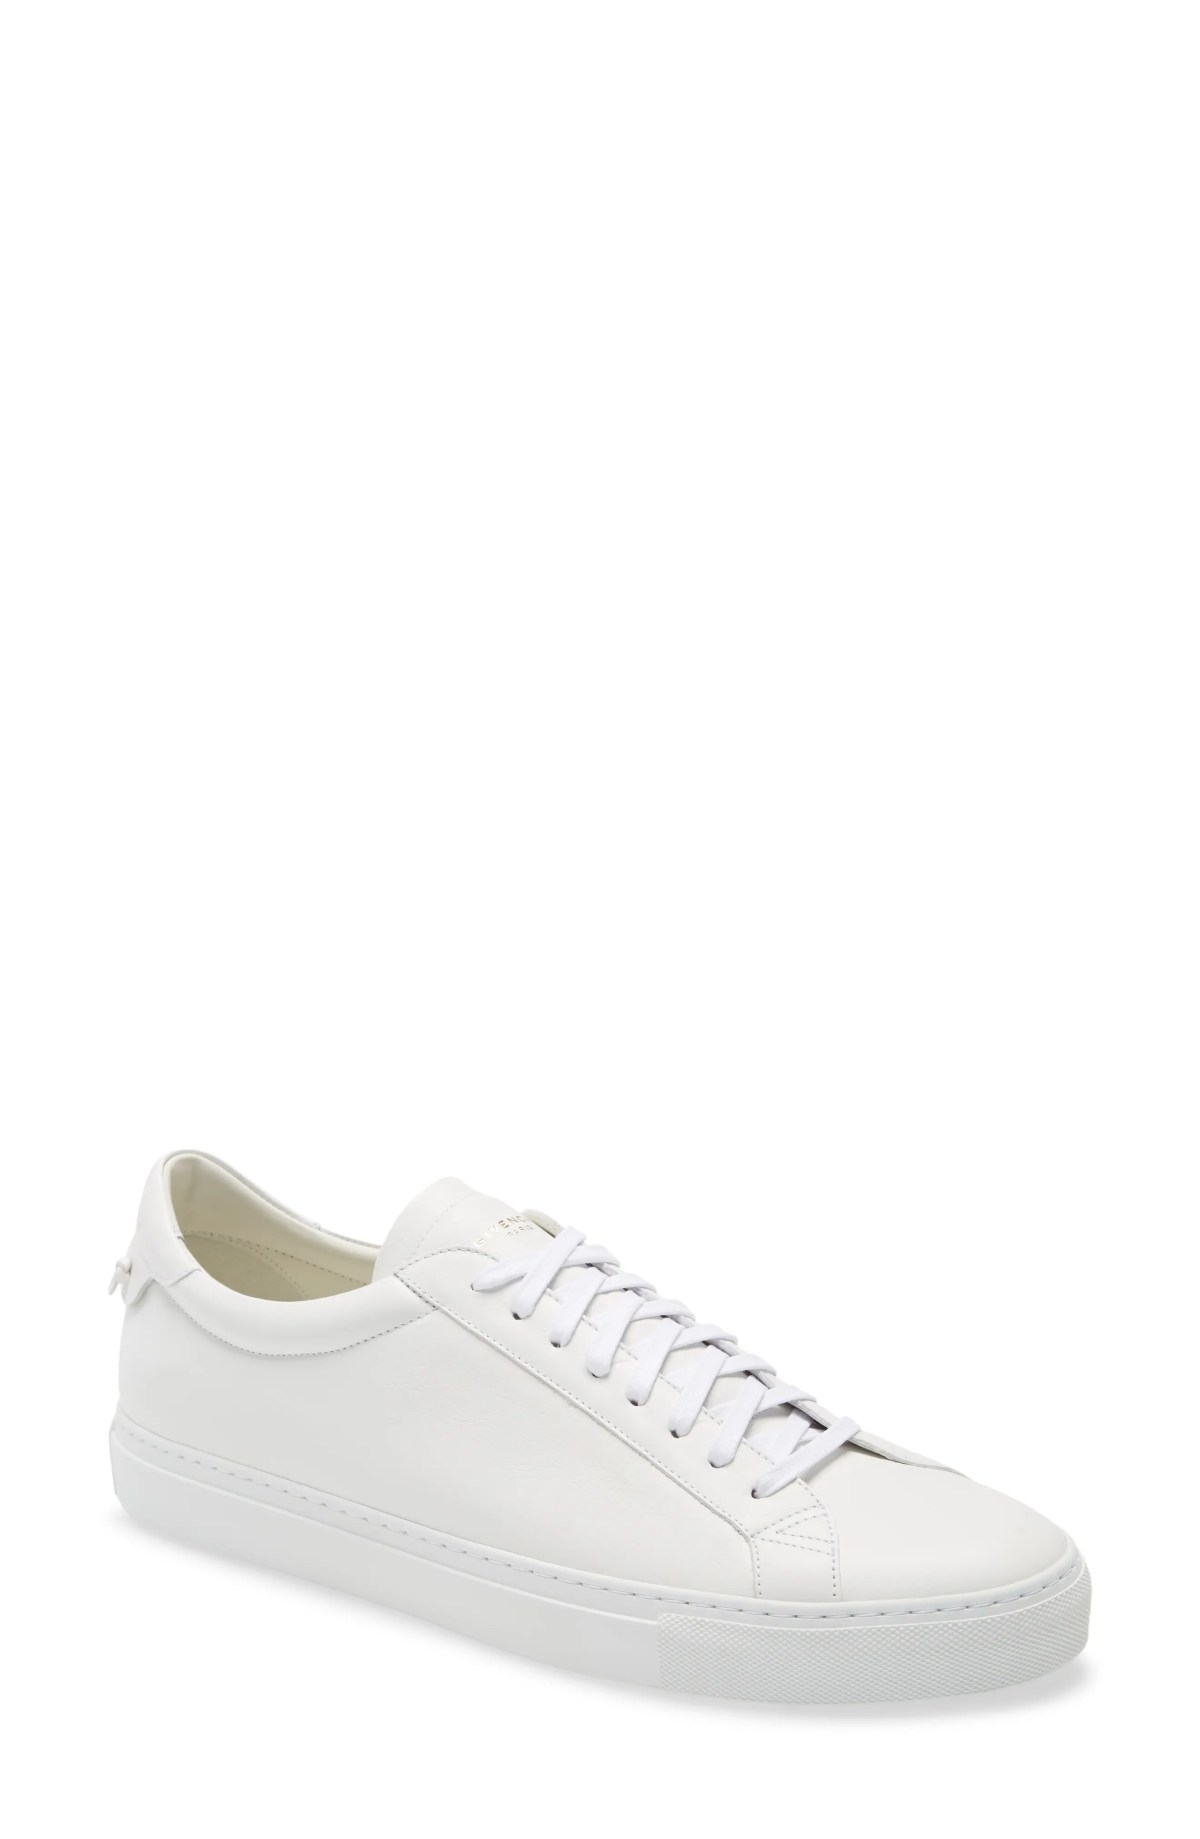 GIVENCHY Urban Knots Low Top Sneaker, Main, color, WHITE/ WHITE/ WHITE